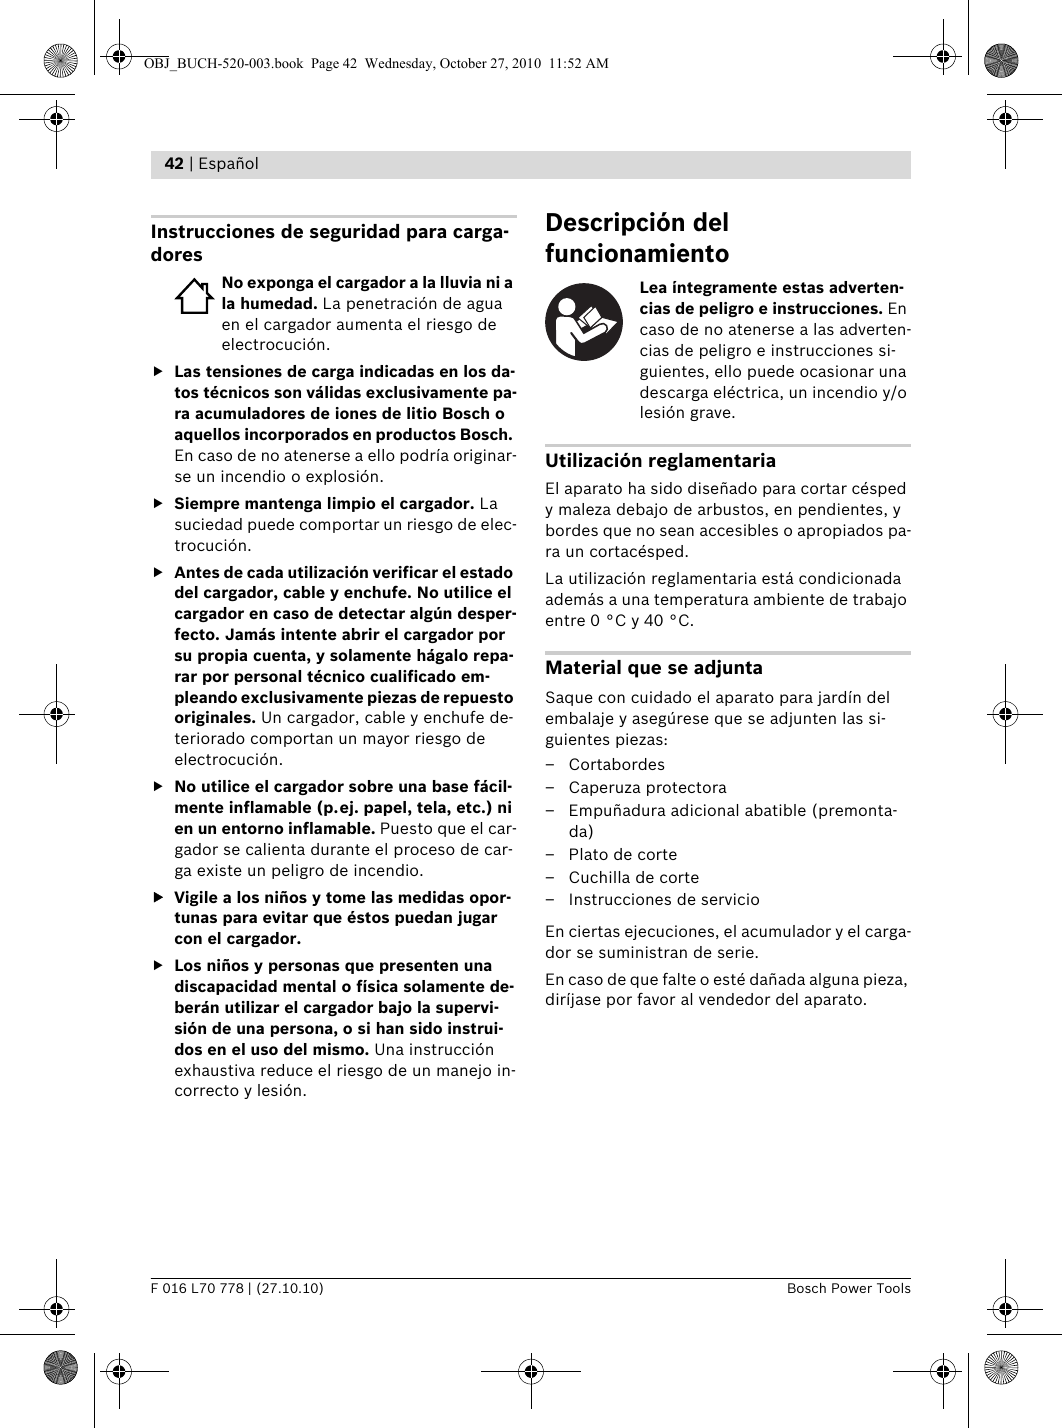 Art26LiManual User Guide Page 42